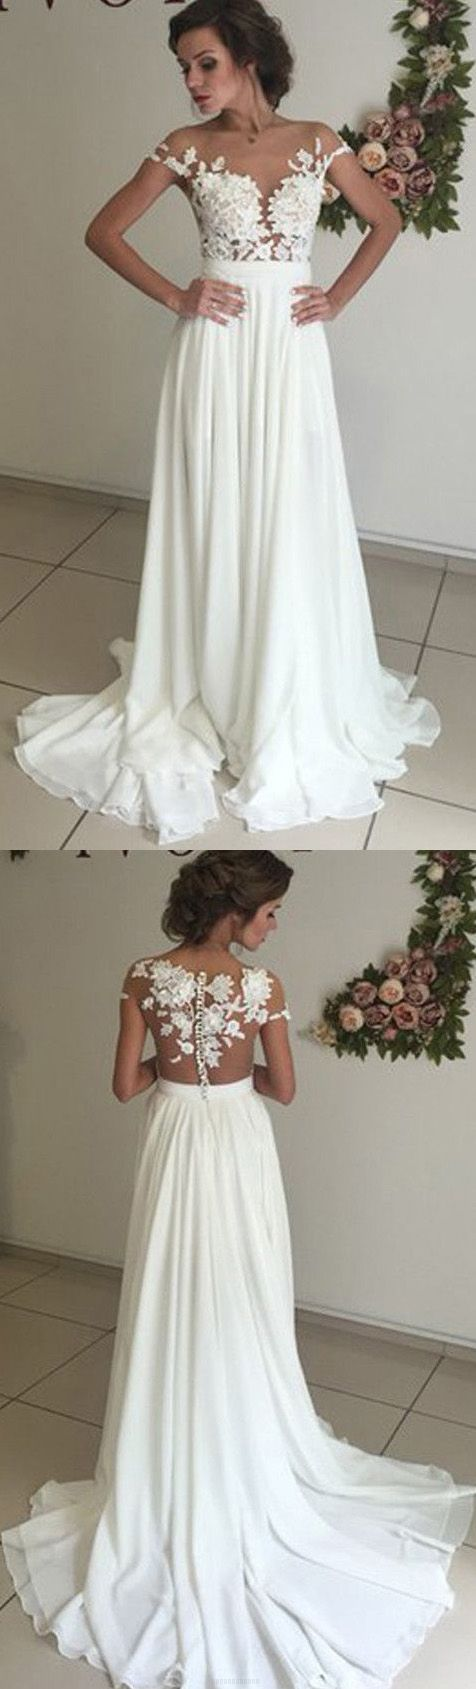 Wedding dresses with train   best Wedding Dresses images on Pinterest  Dress wedding